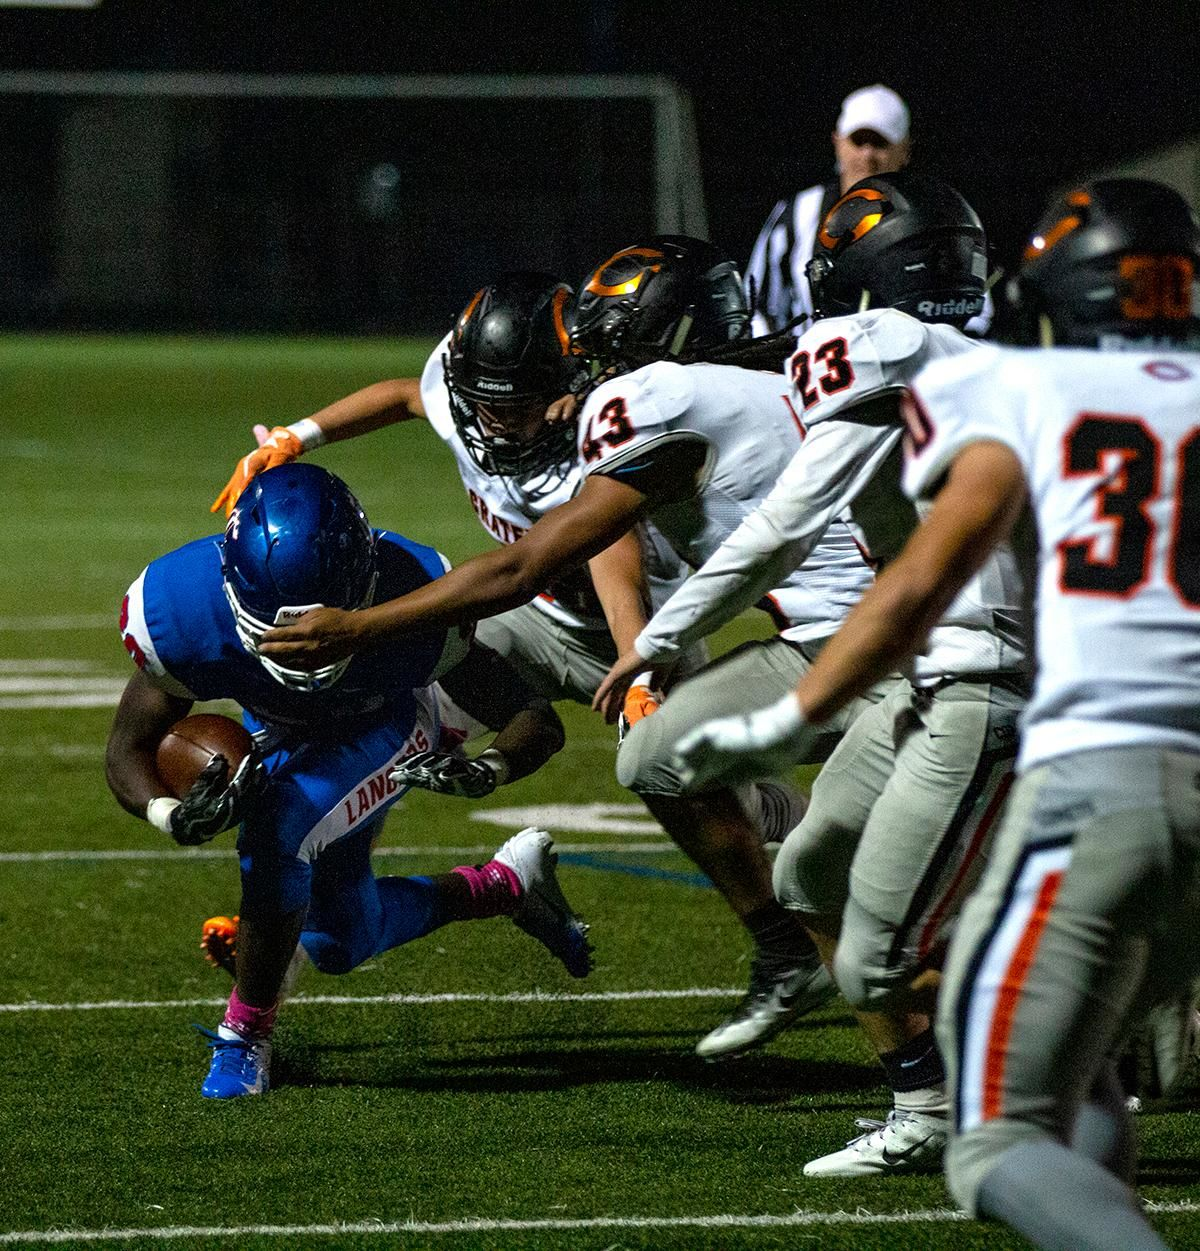 Churchill running back Deonte Jones (#20) ducking through the reach of Crater defenders. The Churchill Lancers dominated the Crater Comets 58 – 20 in front of a pact Homecoming crowd. With the win Churchill advances to the 5A district playoffs. Photo by Payton Bruni